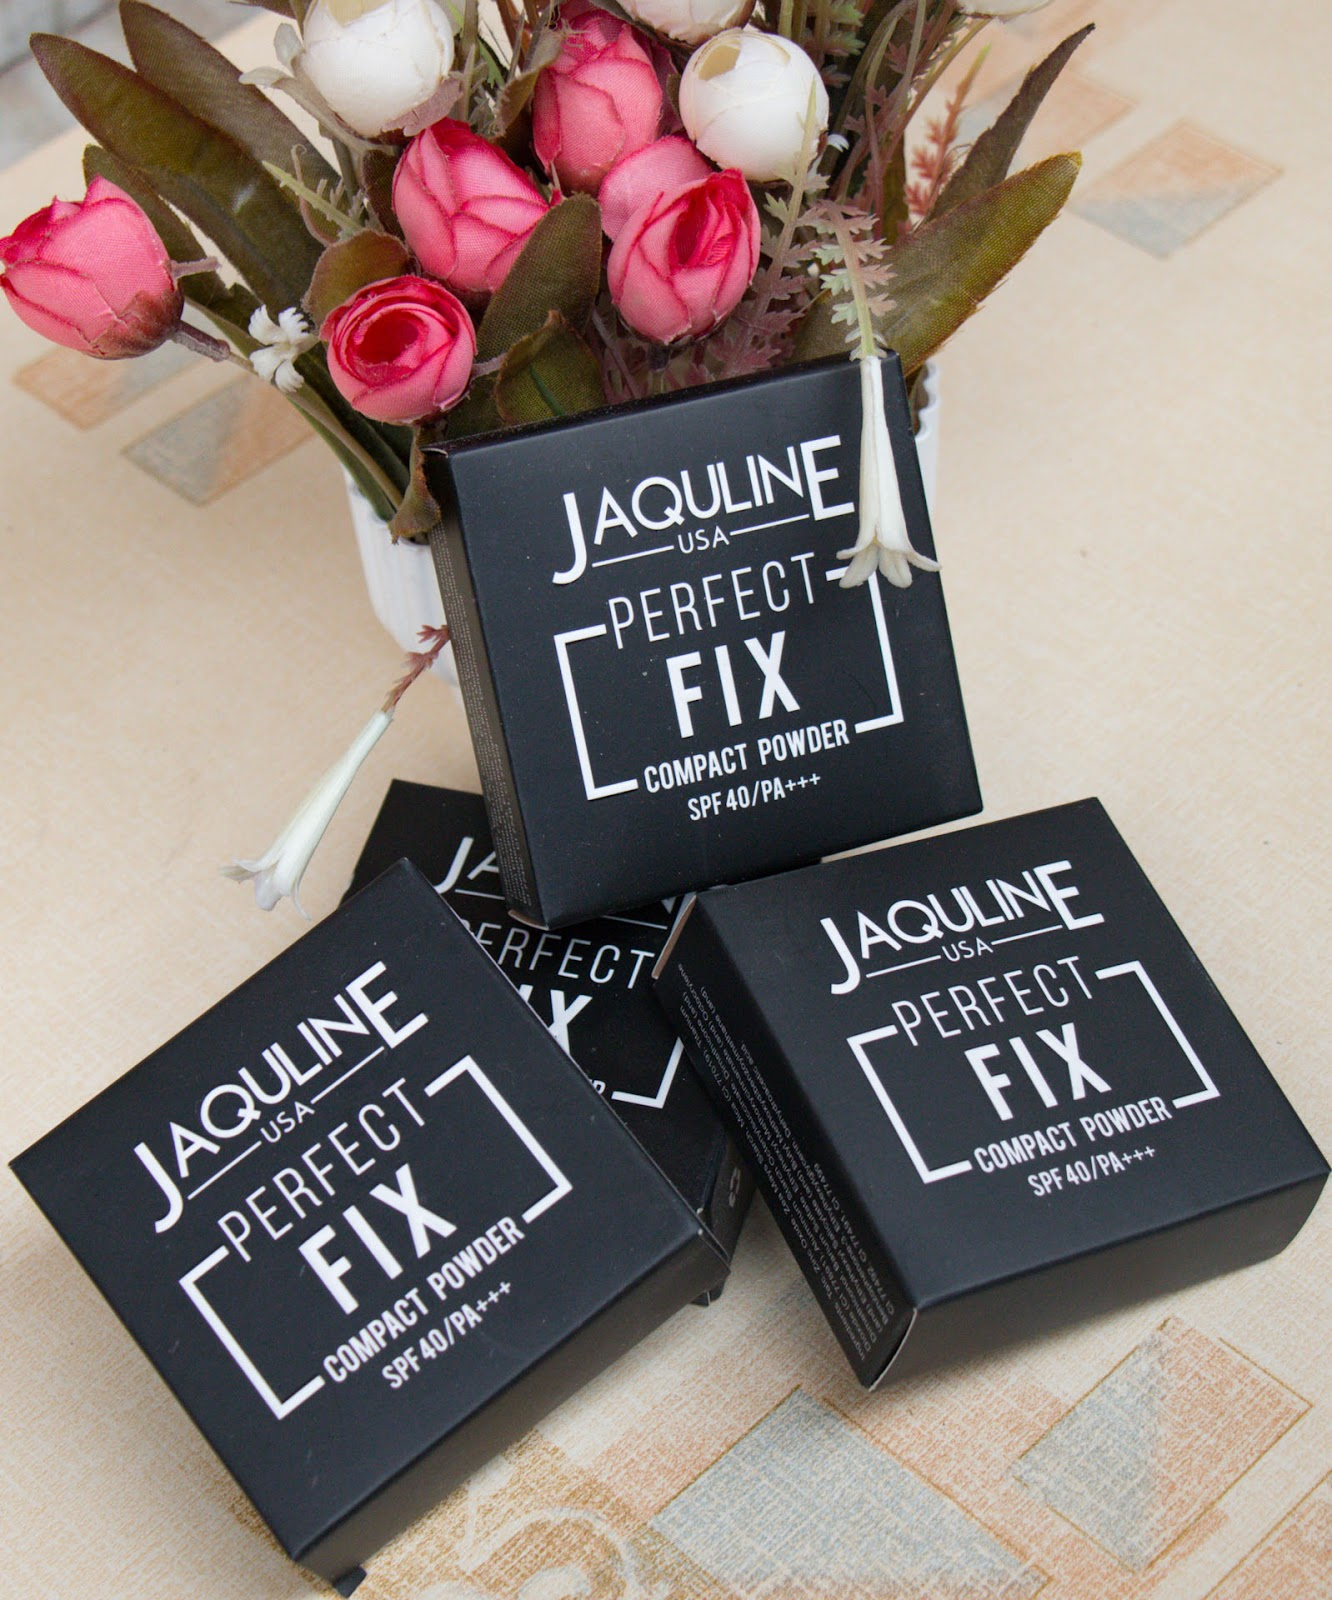 Jaquline USA Compact Powder Packaging